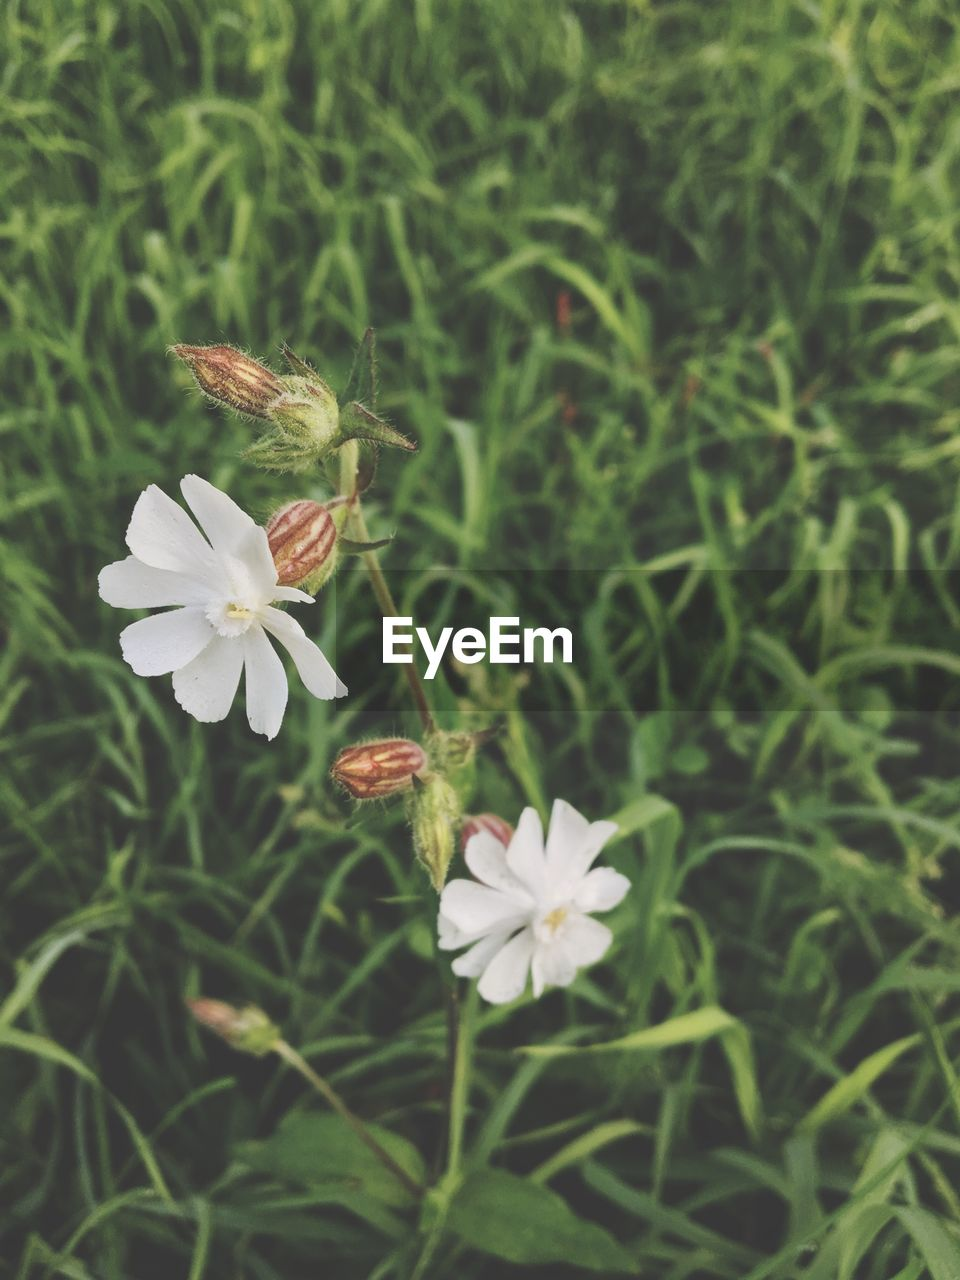 flower, growth, petal, flower head, nature, fragility, freshness, plant, beauty in nature, white color, day, outdoors, blooming, no people, close-up, grass